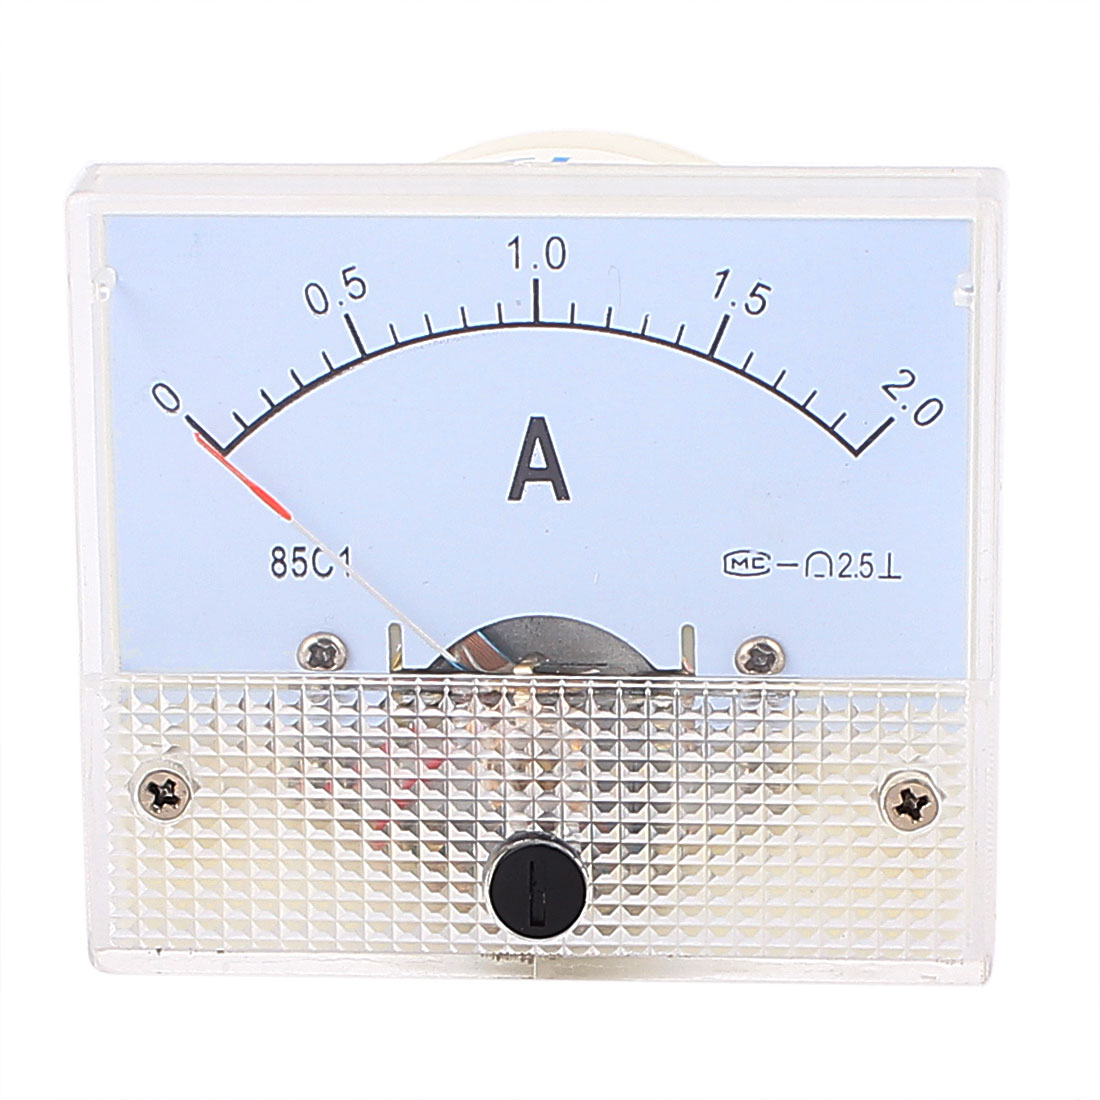 DC 0-2.0 A Analog Ammeter Analogue Panel Ampmeter Current Meter Gauge